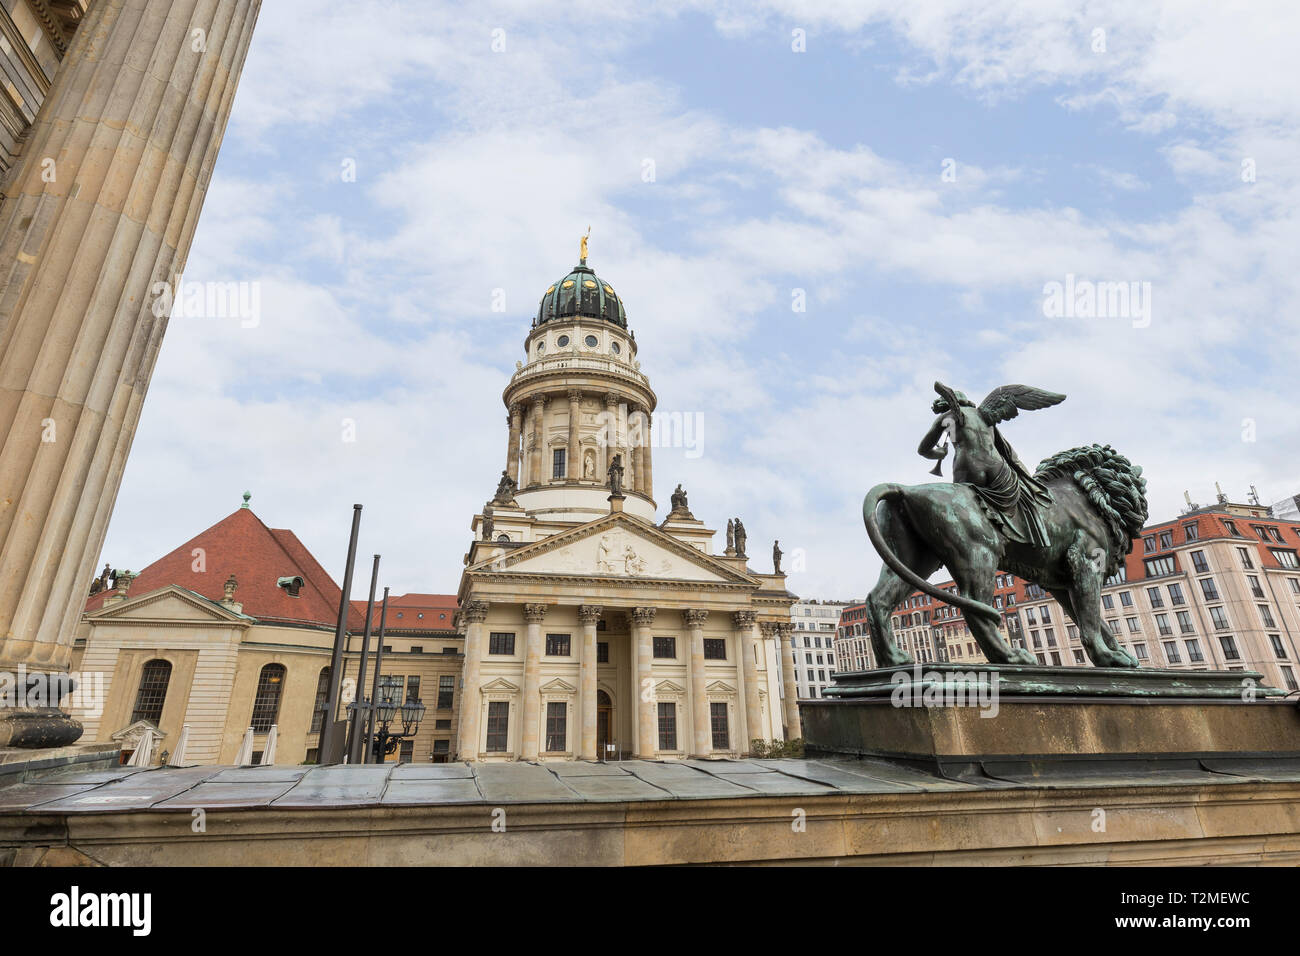 Französischer Dom (or the French Cathedral) and statue in front of the Konzerthaus Berlin (Berlin Concert Hall) at the Gendarmenmarkt Square in Berlin Stock Photo